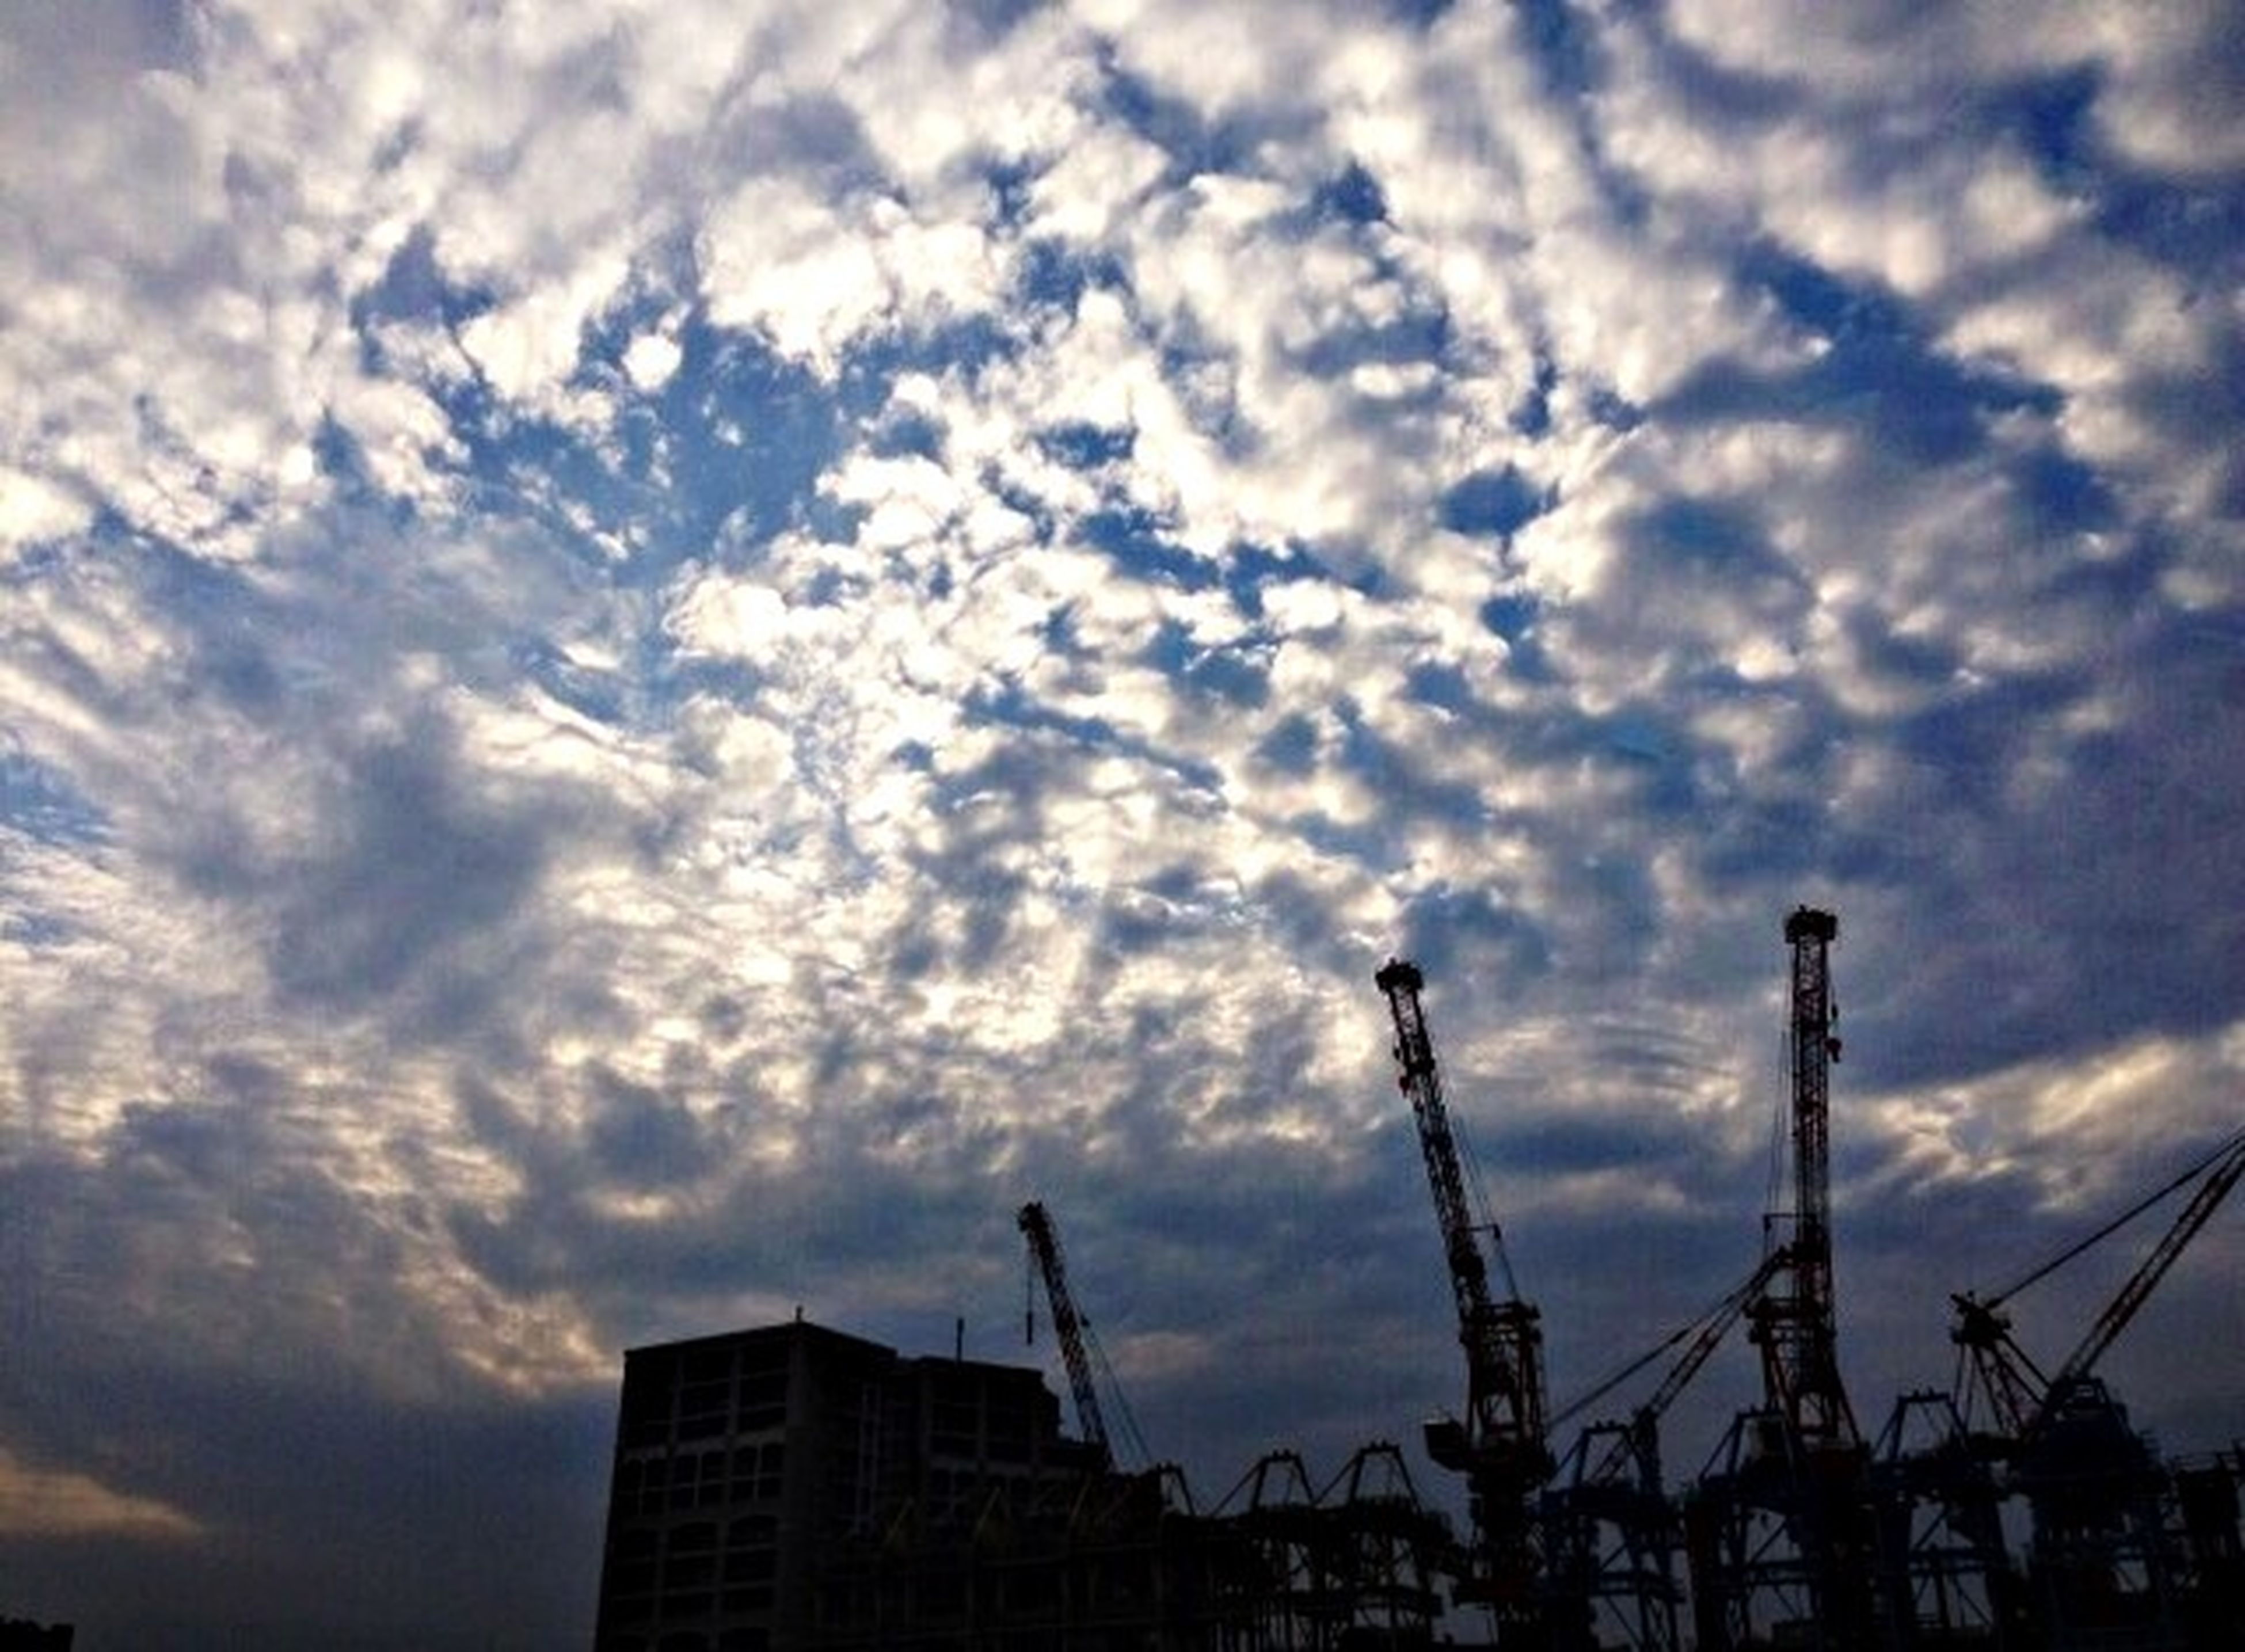 sky, architecture, built structure, building exterior, cloud - sky, low angle view, cloudy, city, silhouette, cloud, sunset, weather, crane - construction machinery, tall - high, building, development, dusk, skyscraper, overcast, outdoors